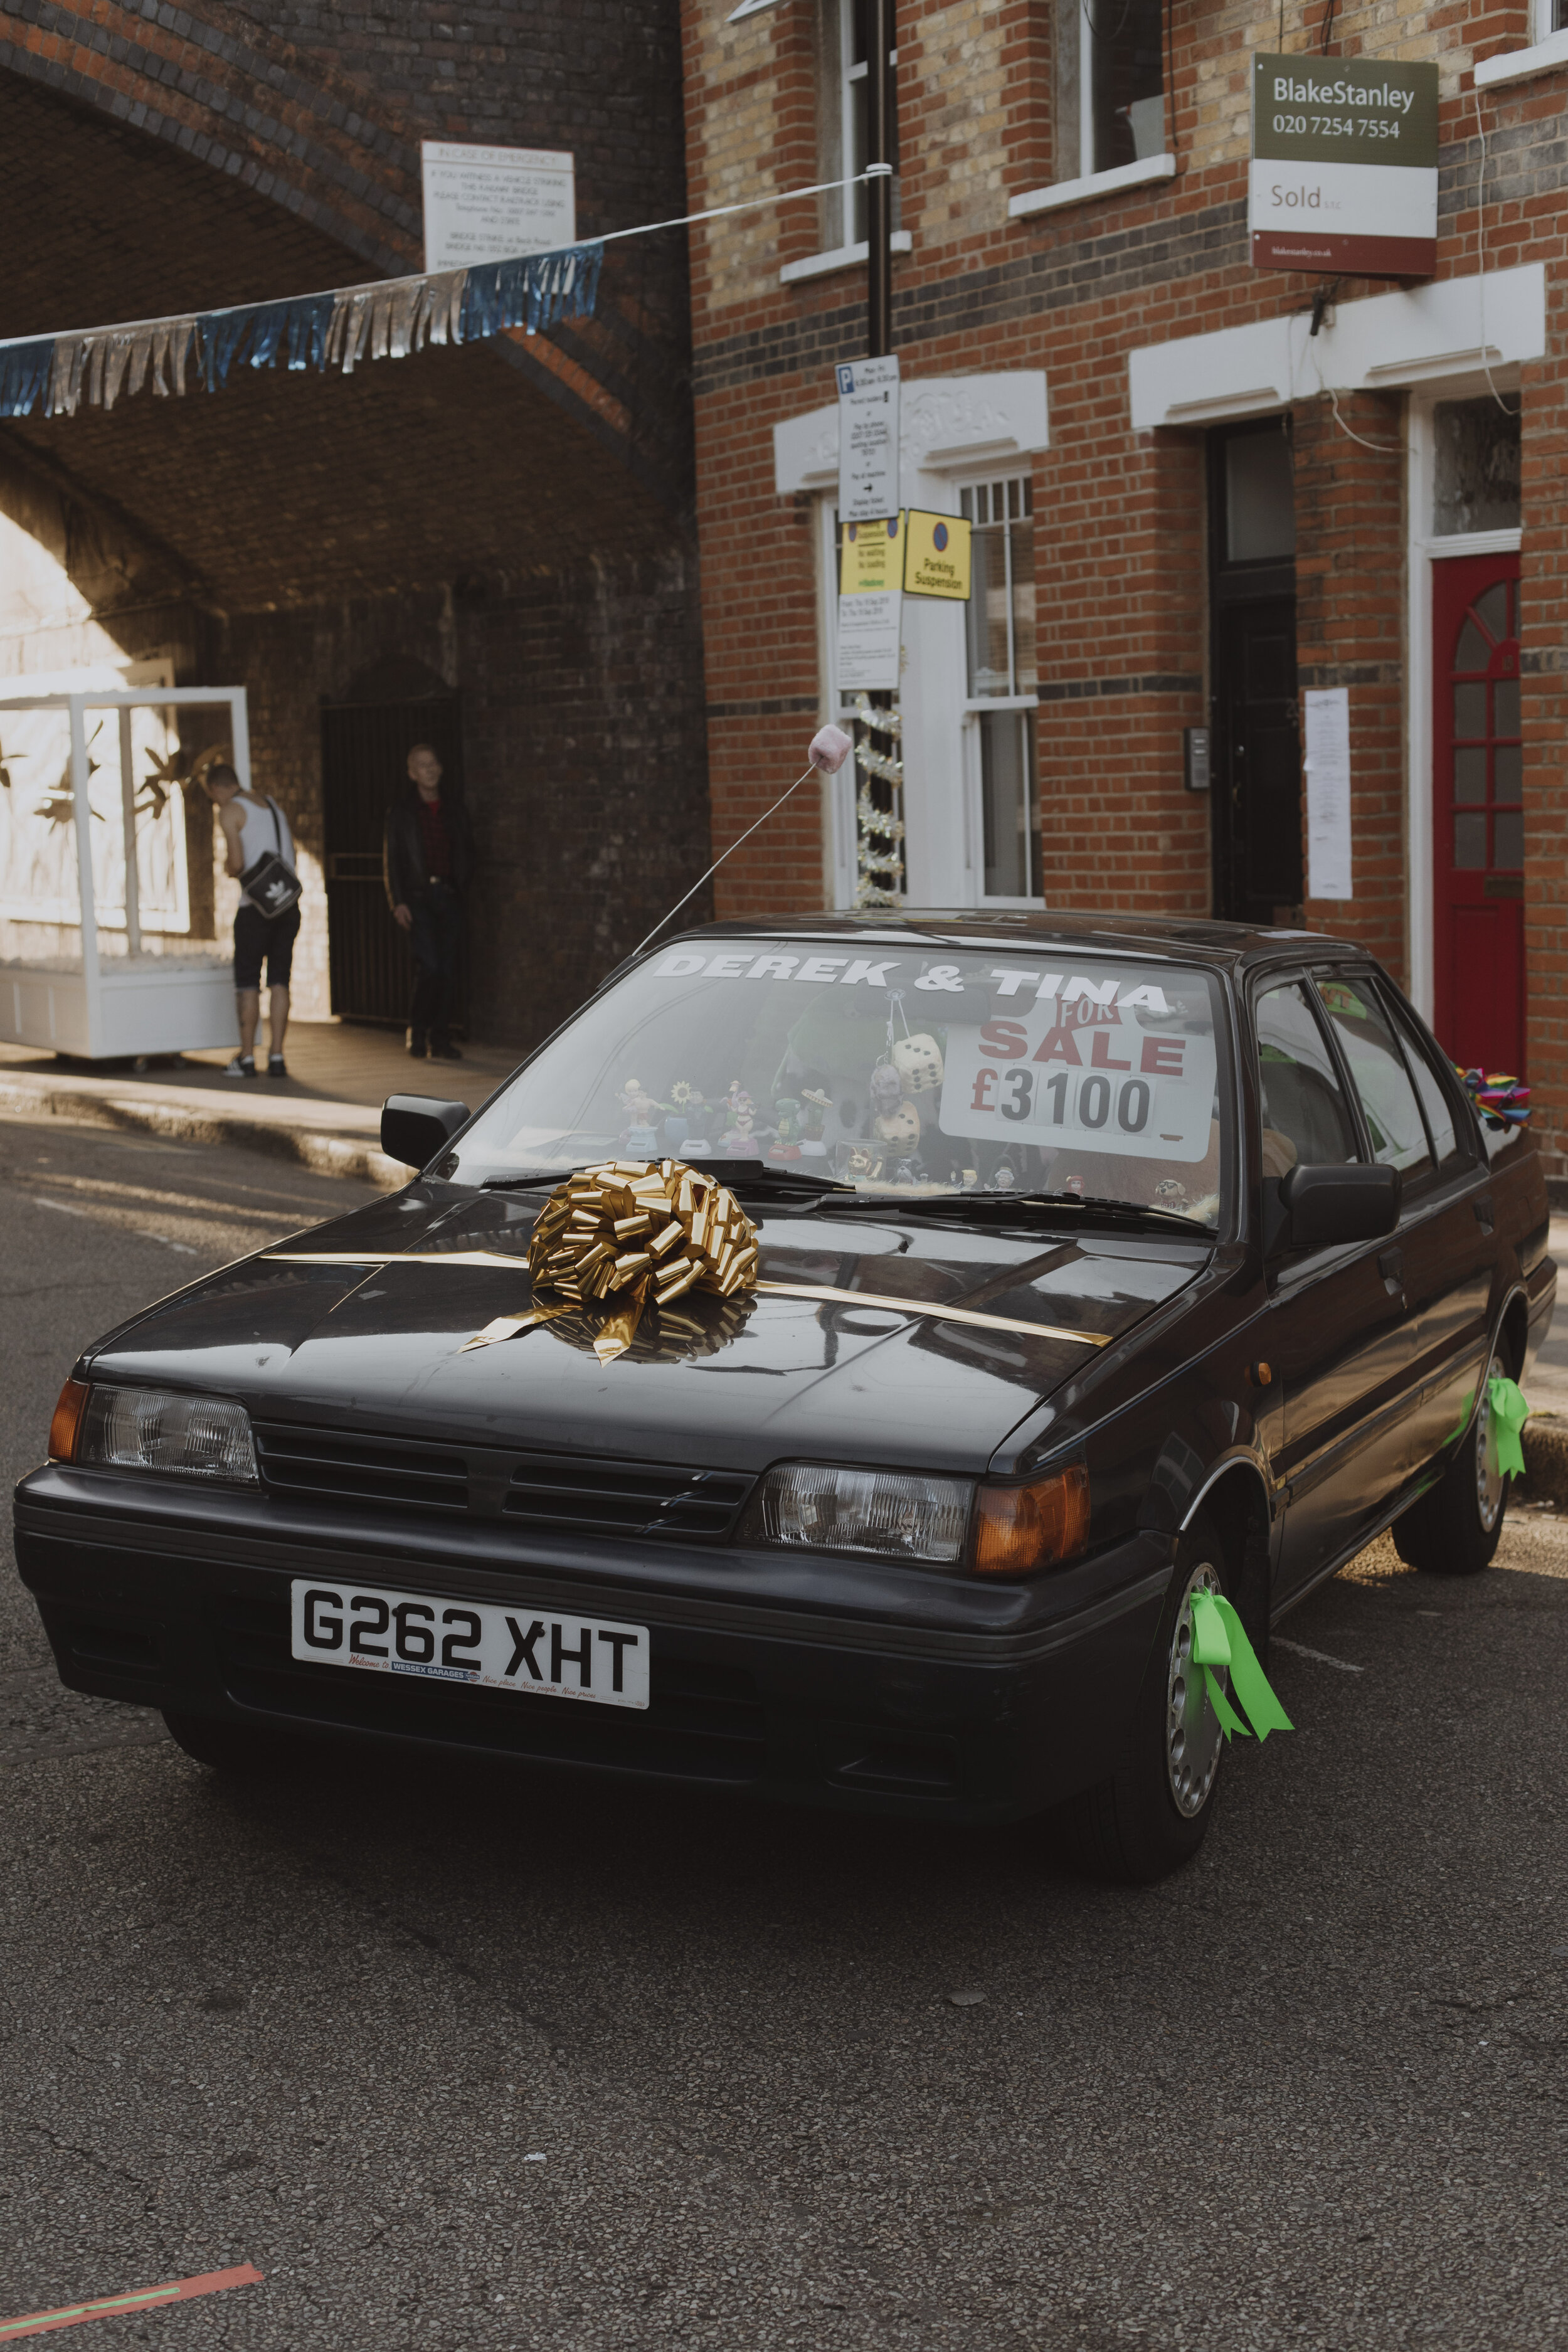 One of Eve Shillingford's Beck Road Motor's cars, Eve sold t-shirts & postcards at the Gift Shop